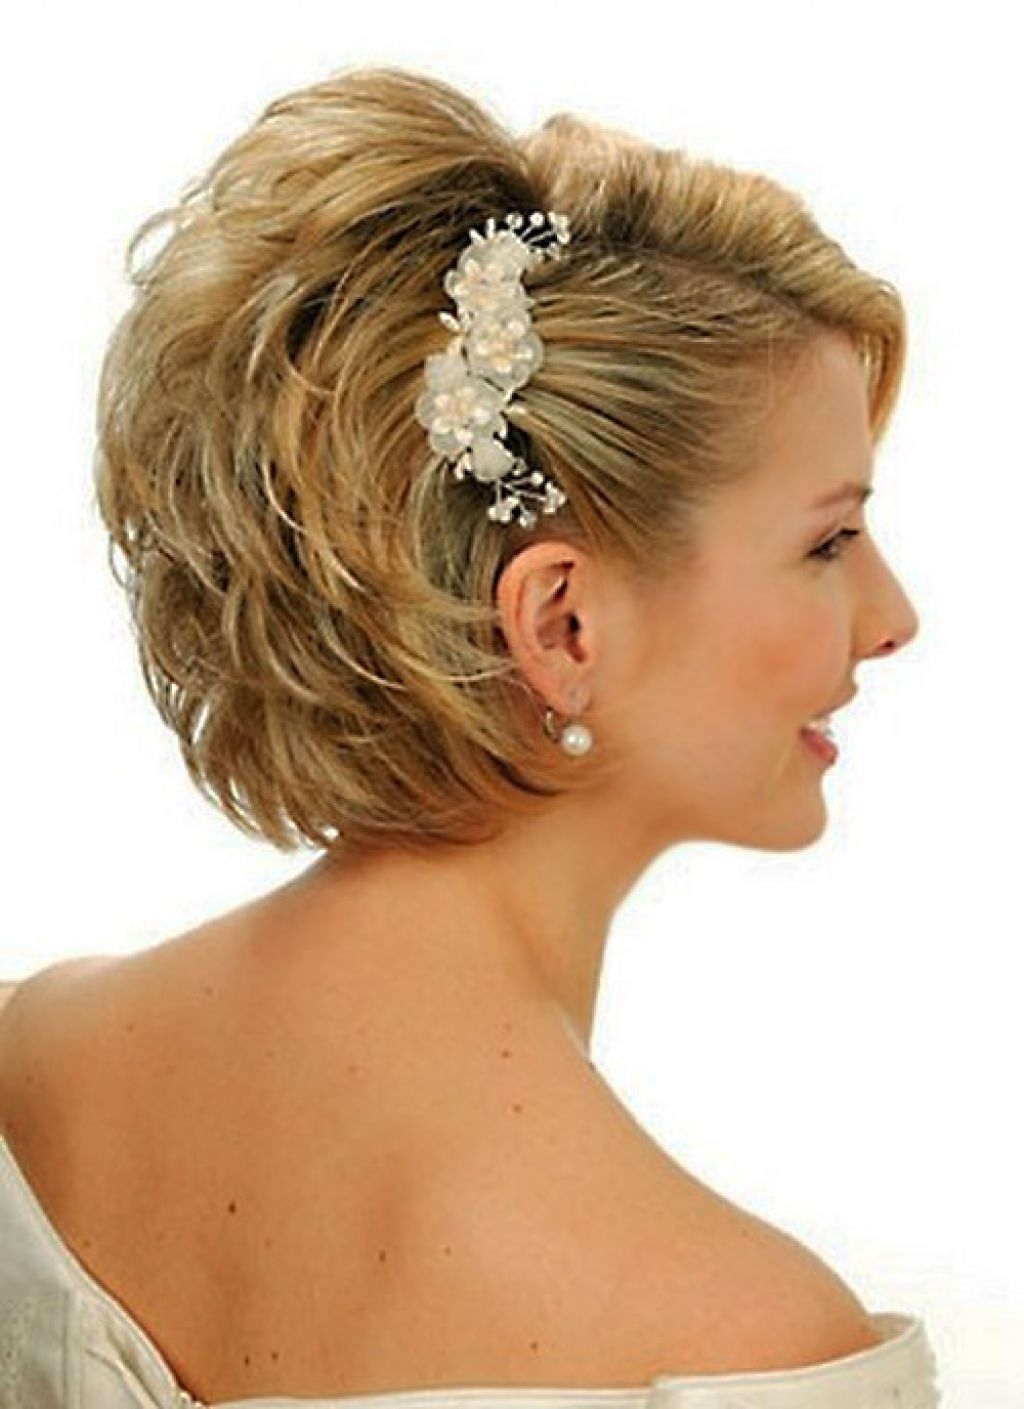 Classy Updo Hairstyles For Bridal Women – Popular Long Hairstyle Idea In Bridesmaid Hairstyles Updos For Short Hair (View 4 of 15)